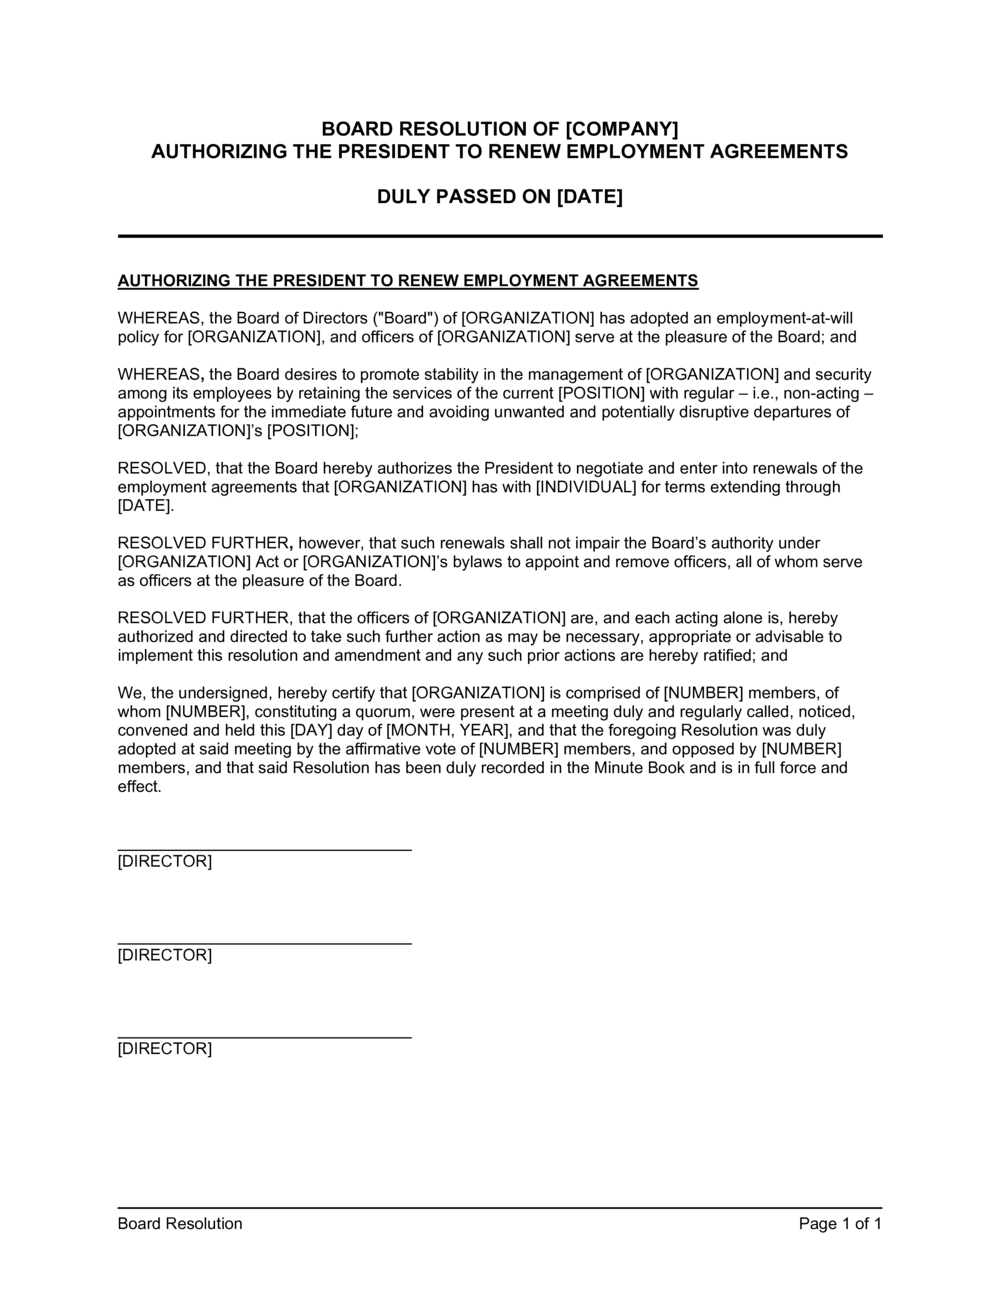 Business-in-a-Box's Board Resolution Authorizing the President to Renew Employment Agreements Template